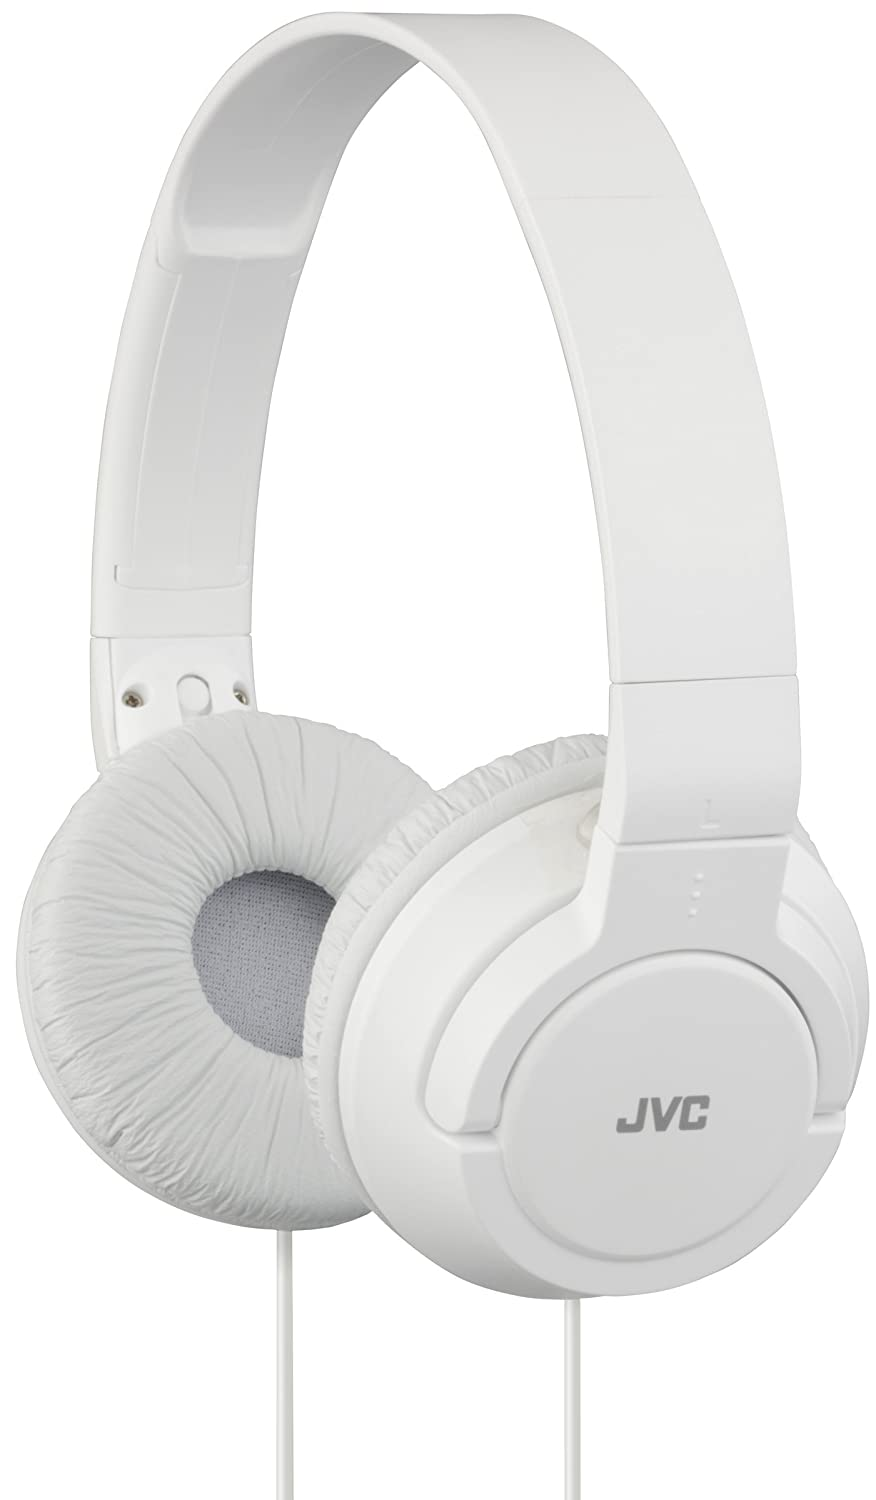 JVC Foldable Lightweight Powerful Bass Over-Ear Headphones